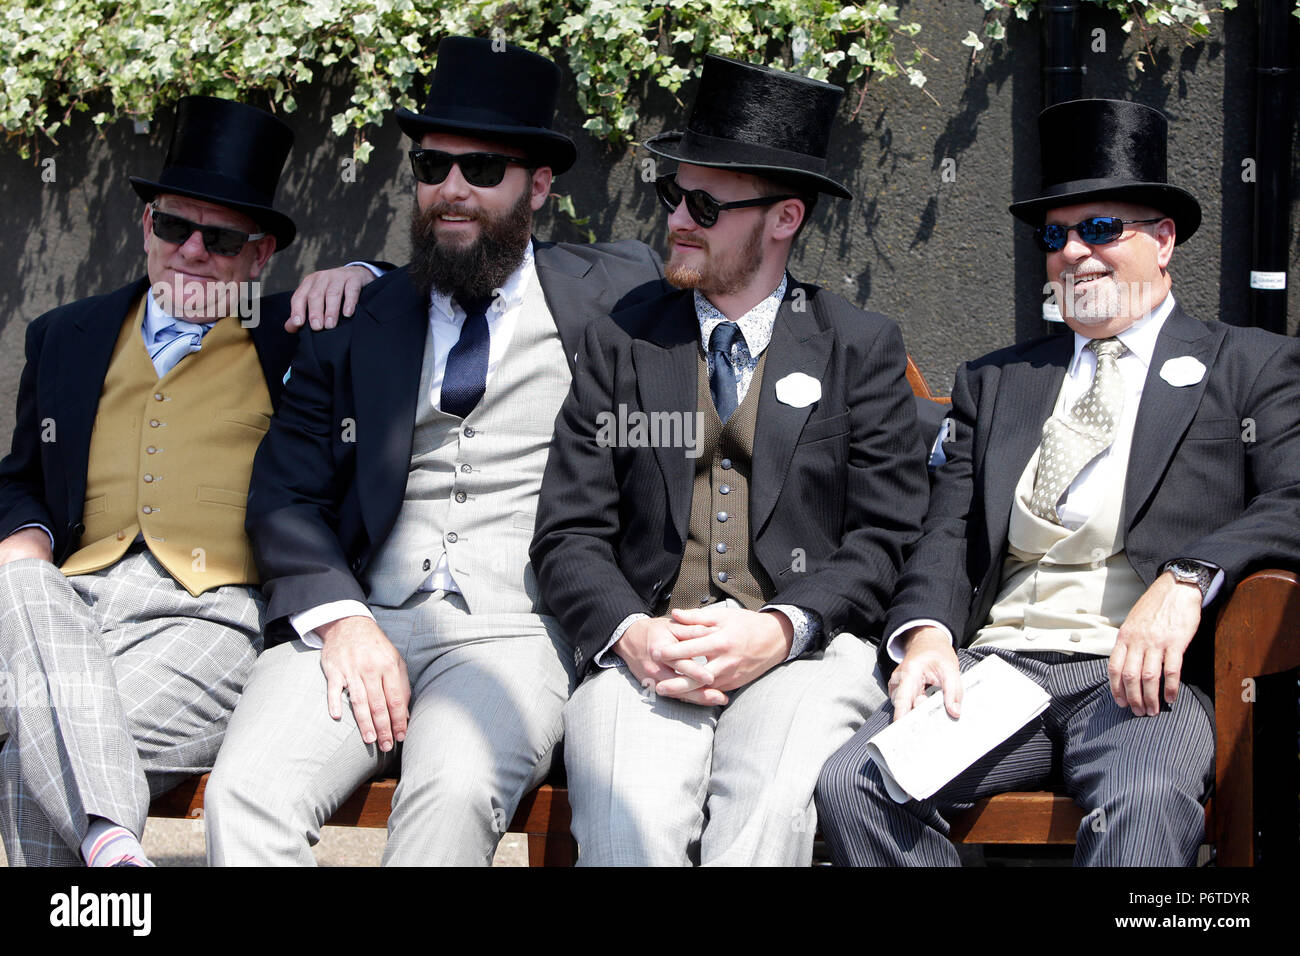 Royal Ascot, Men with top hats waiting for the races - Stock Image